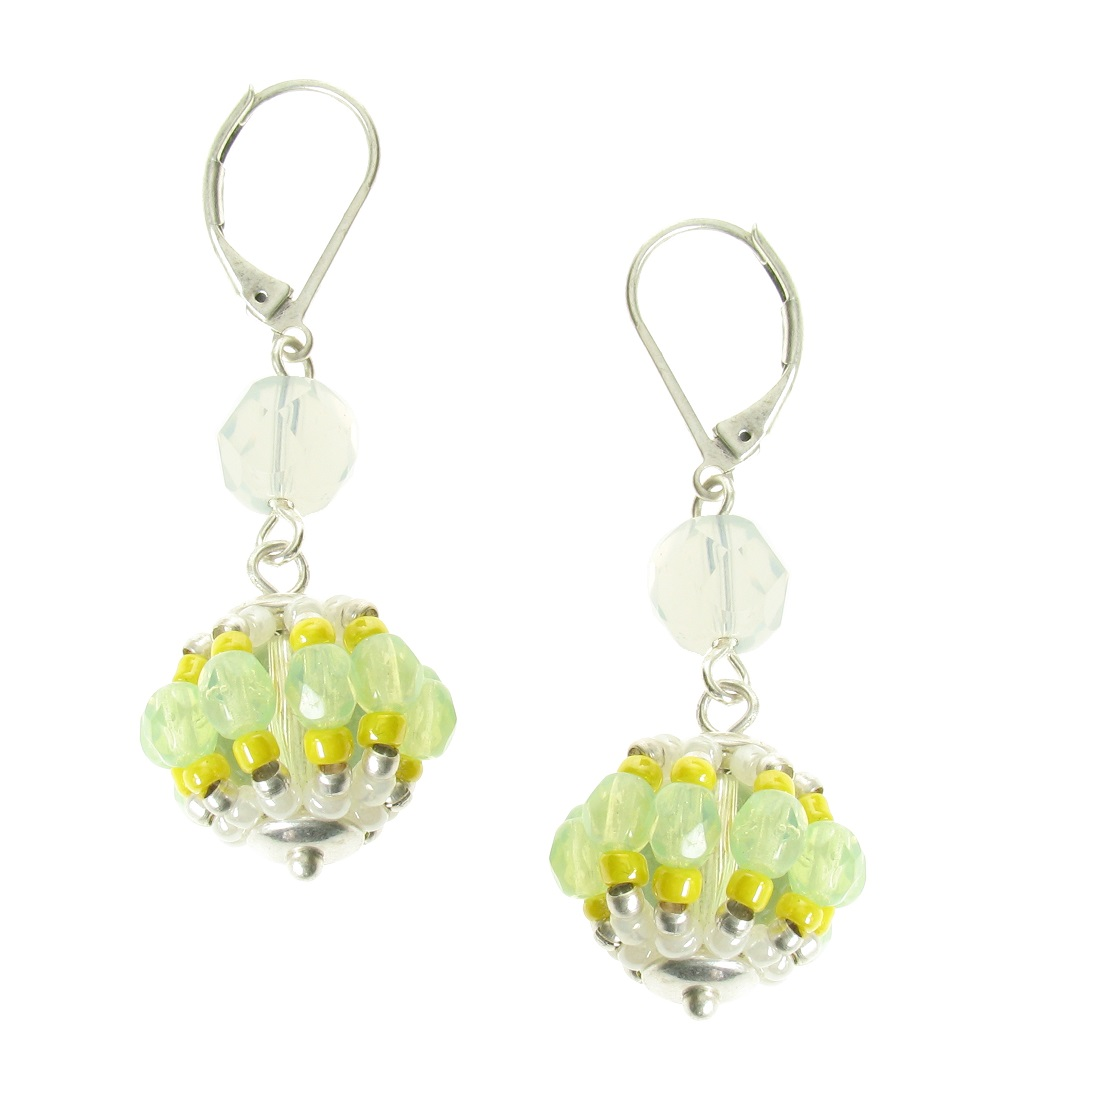 Bohm Floral Folklore Woven Sphere Crystal Earrings - Silver Plate/Green & Yellow